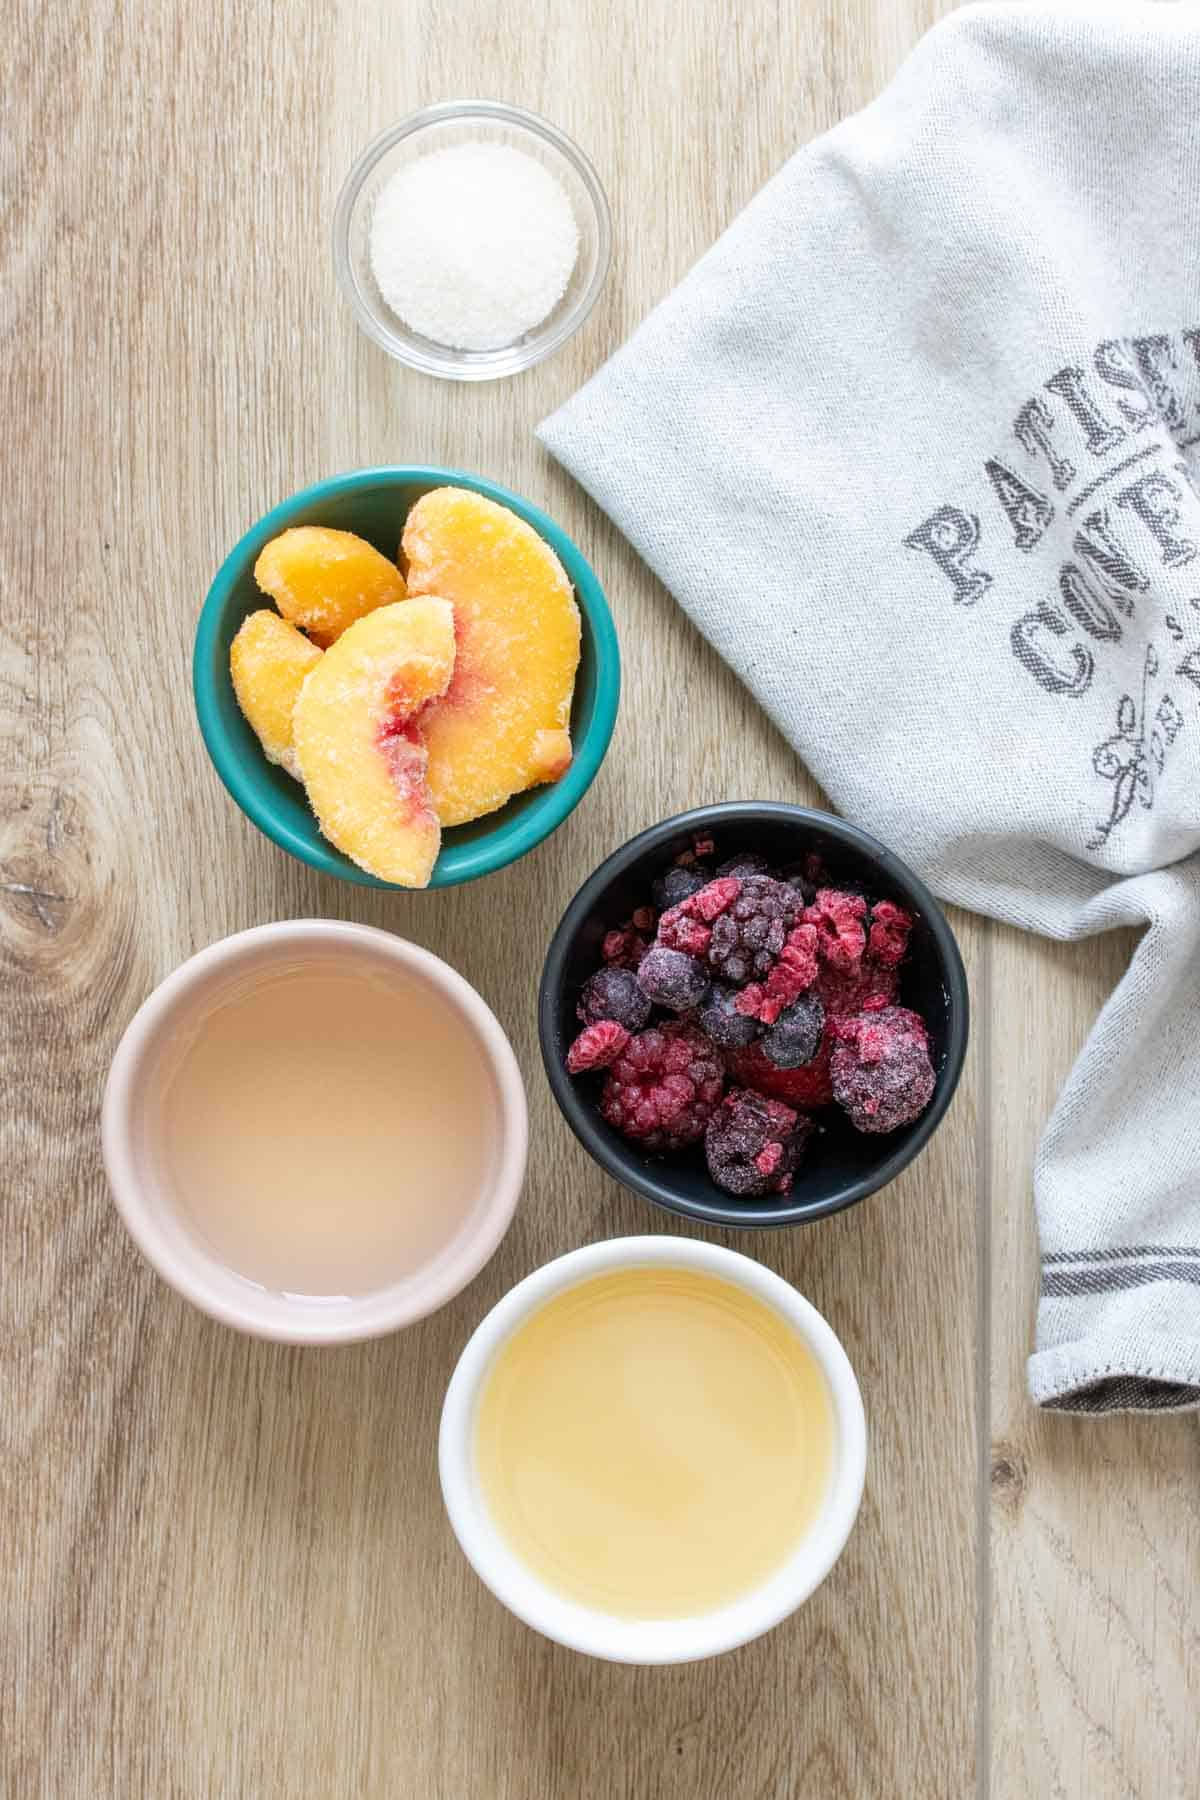 Bowls with frozen fruit, wine and lemon juice on a wooden surface